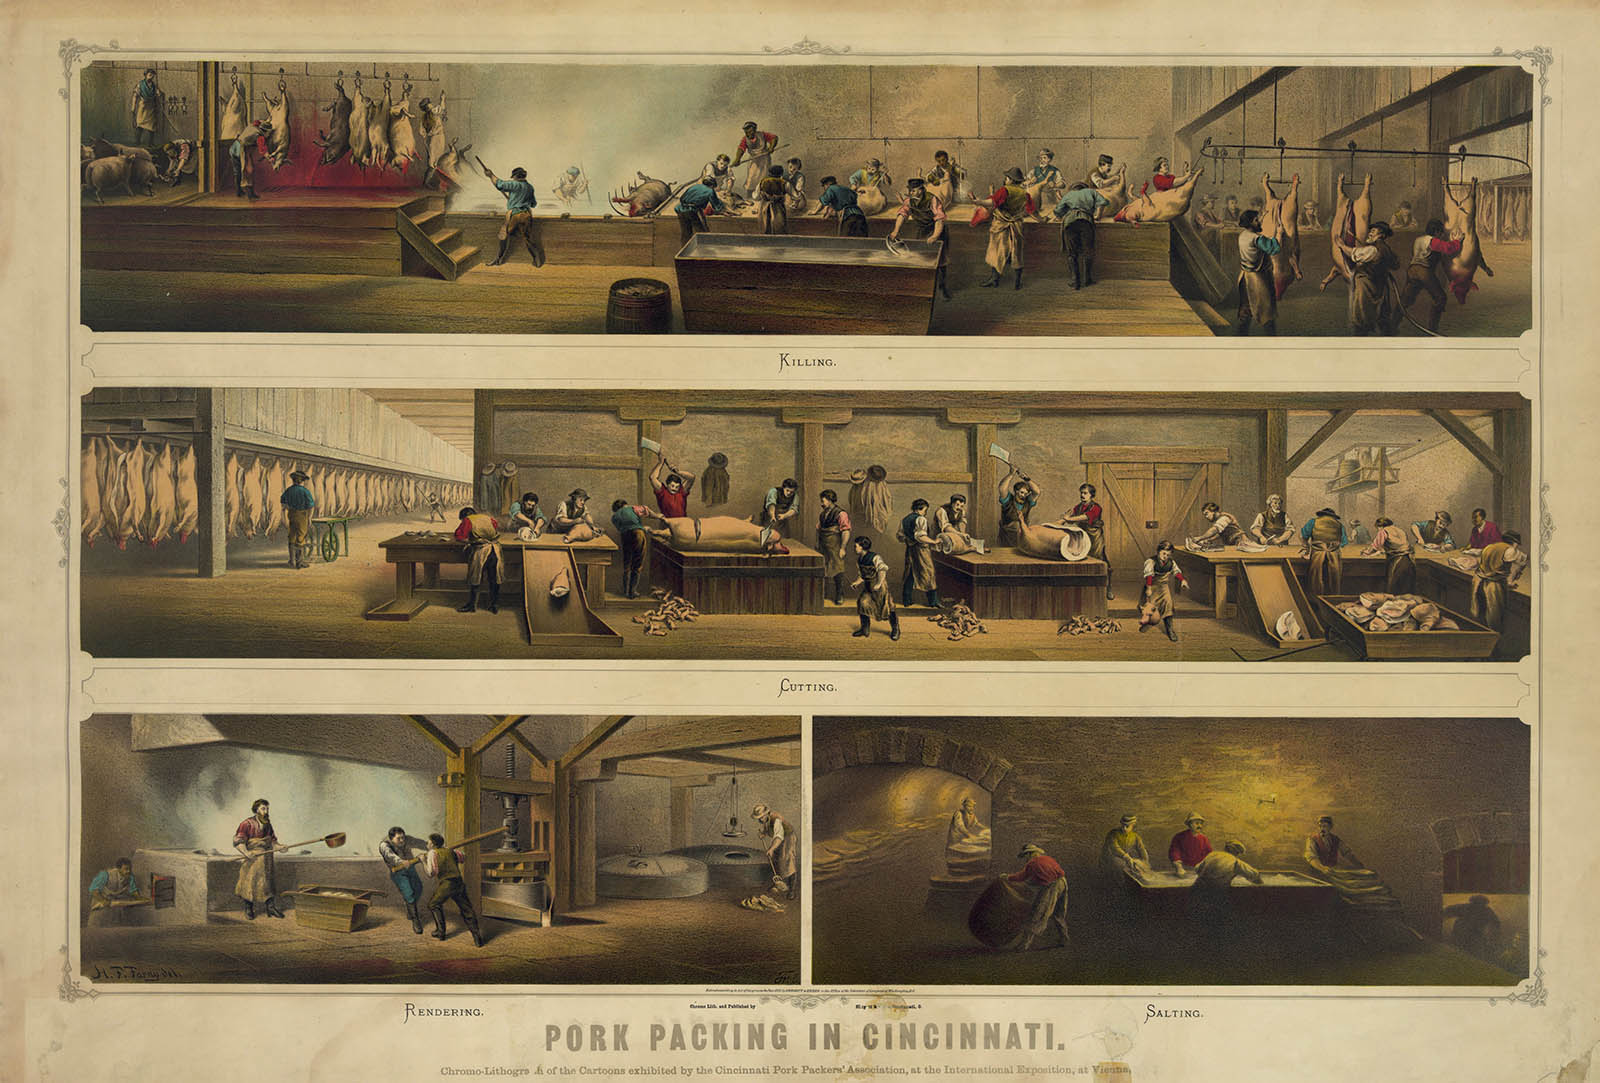 "This print shows the four stages of pork packing in nineteenth-century Cincinnati. This centralization of production made meat-packing an innovative industry, one of great interest to industrialists of all ilks. In fact, this chromo-lithograph was exhibited by the Cincinnati Pork Packers' Association at the International Exposition in Vienna, Austria. ""Pork Packing in Cincinnati,"" 1873. Wikimedia, http://commons.wikimedia.org/wiki/File:Pork_packing_in_Cincinnati_1873.jpg."